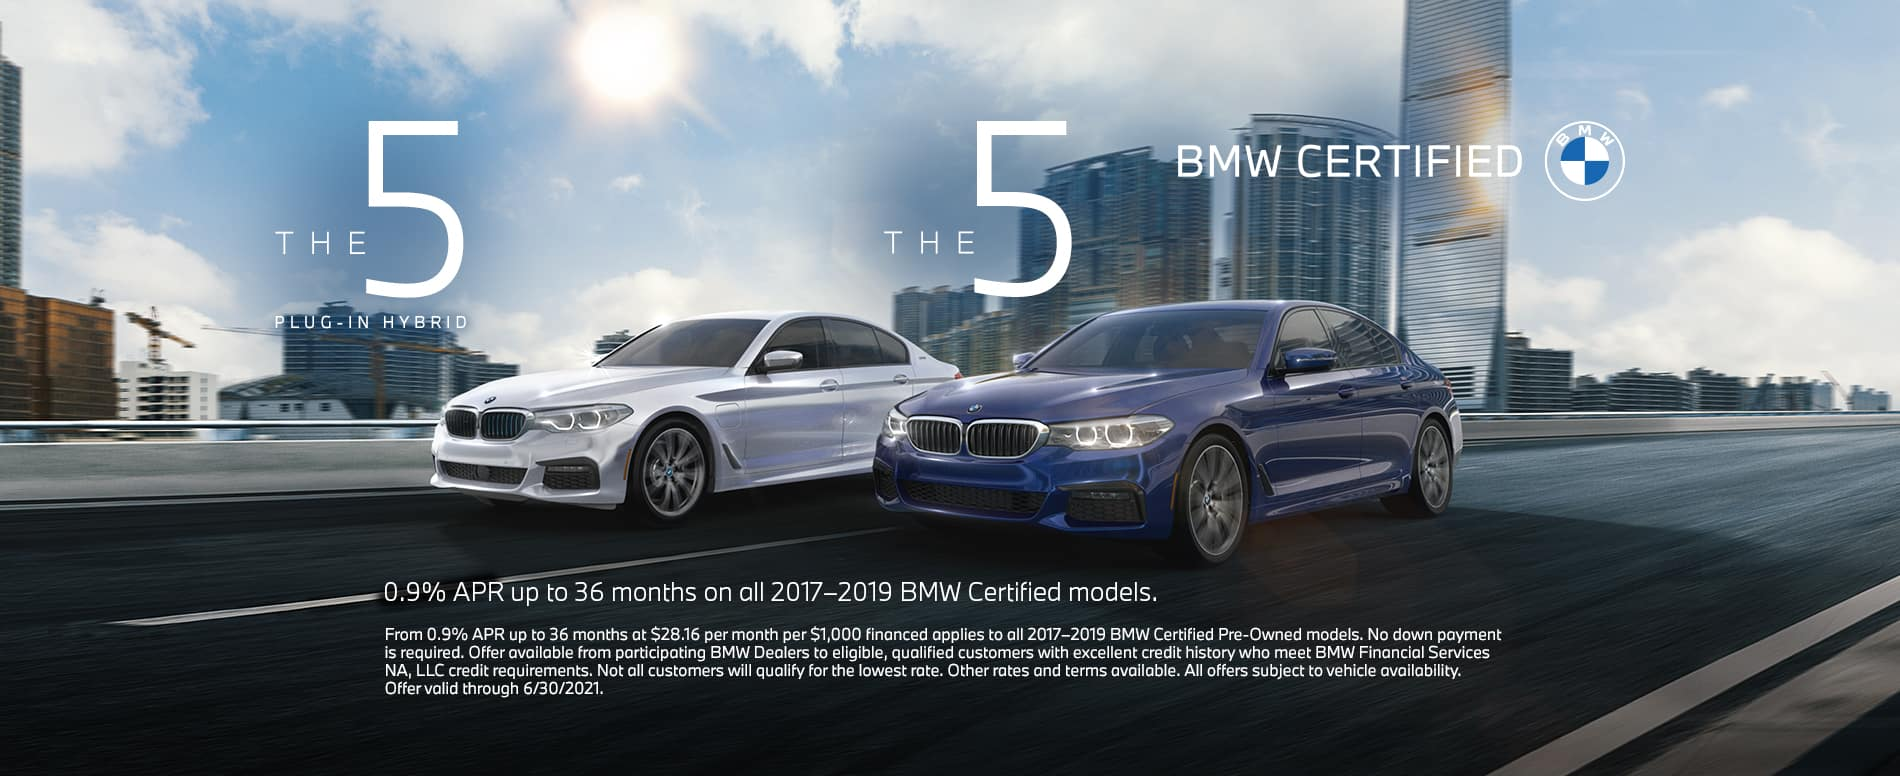 White and blue certified bmws on a road. 0.9% APR up to 36 months